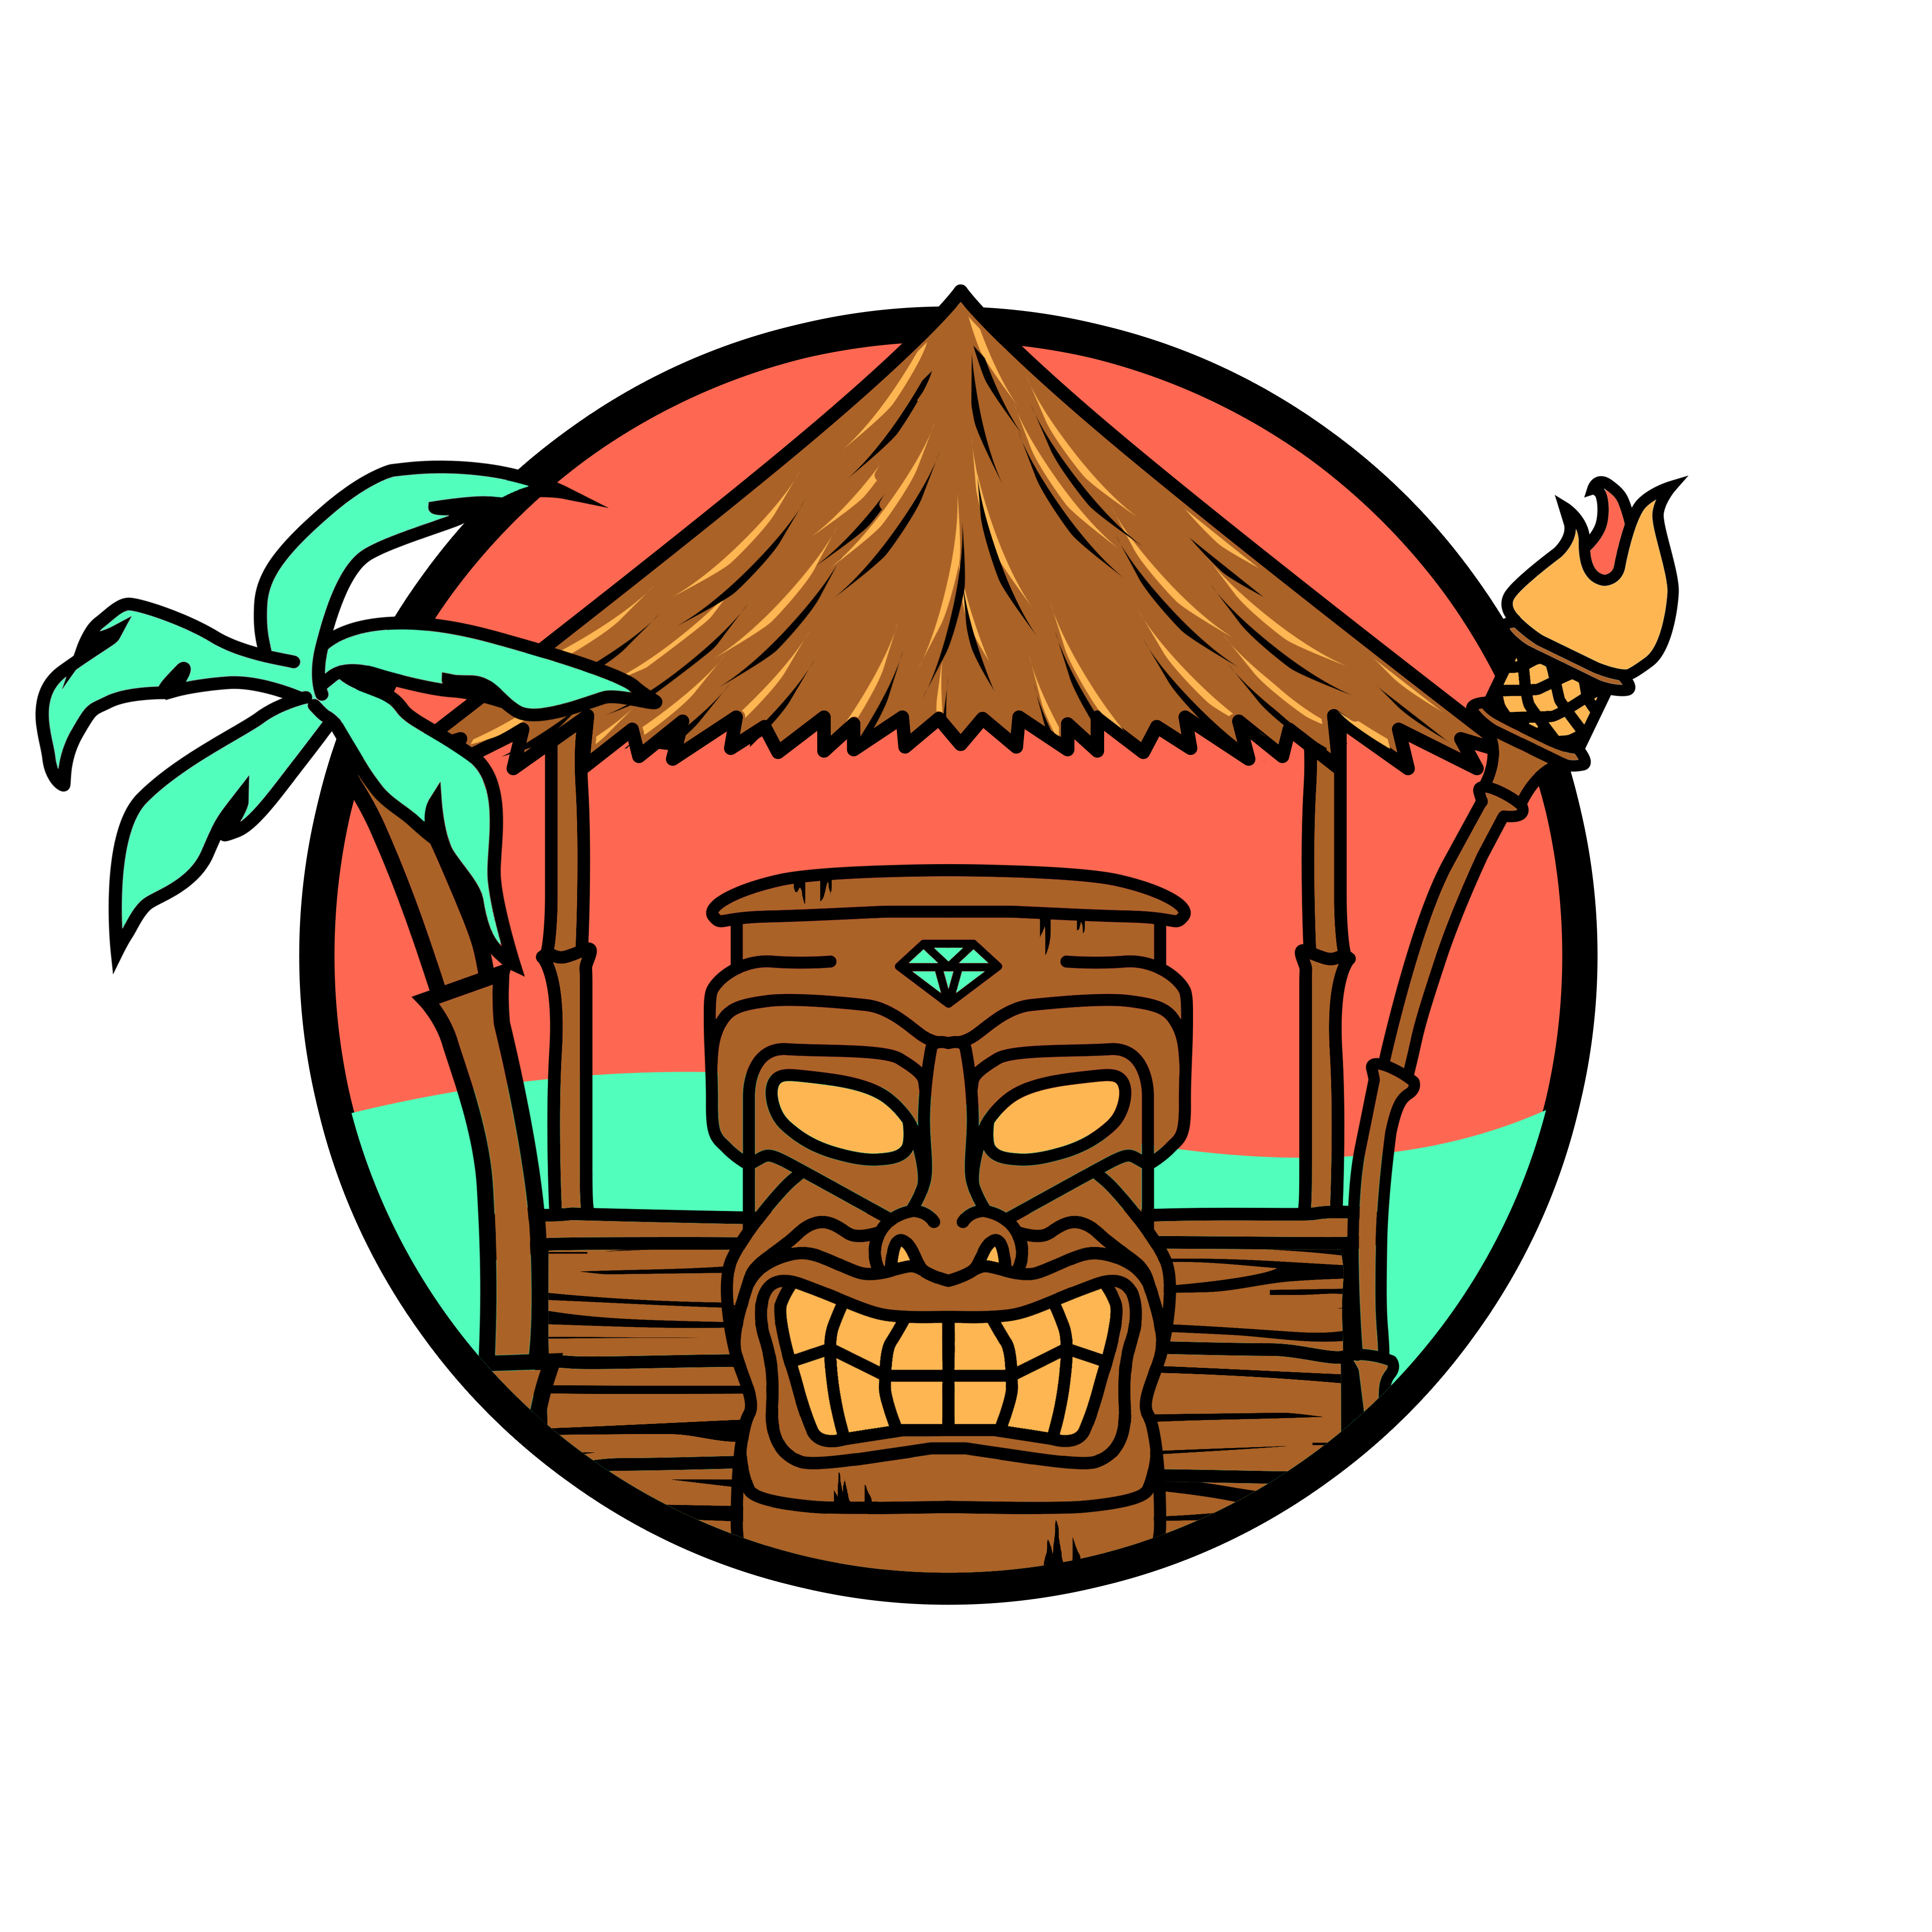 tiki hut clipart at getdrawings com free for personal use tiki hut rh getdrawings com  tiki hut clipart black and white